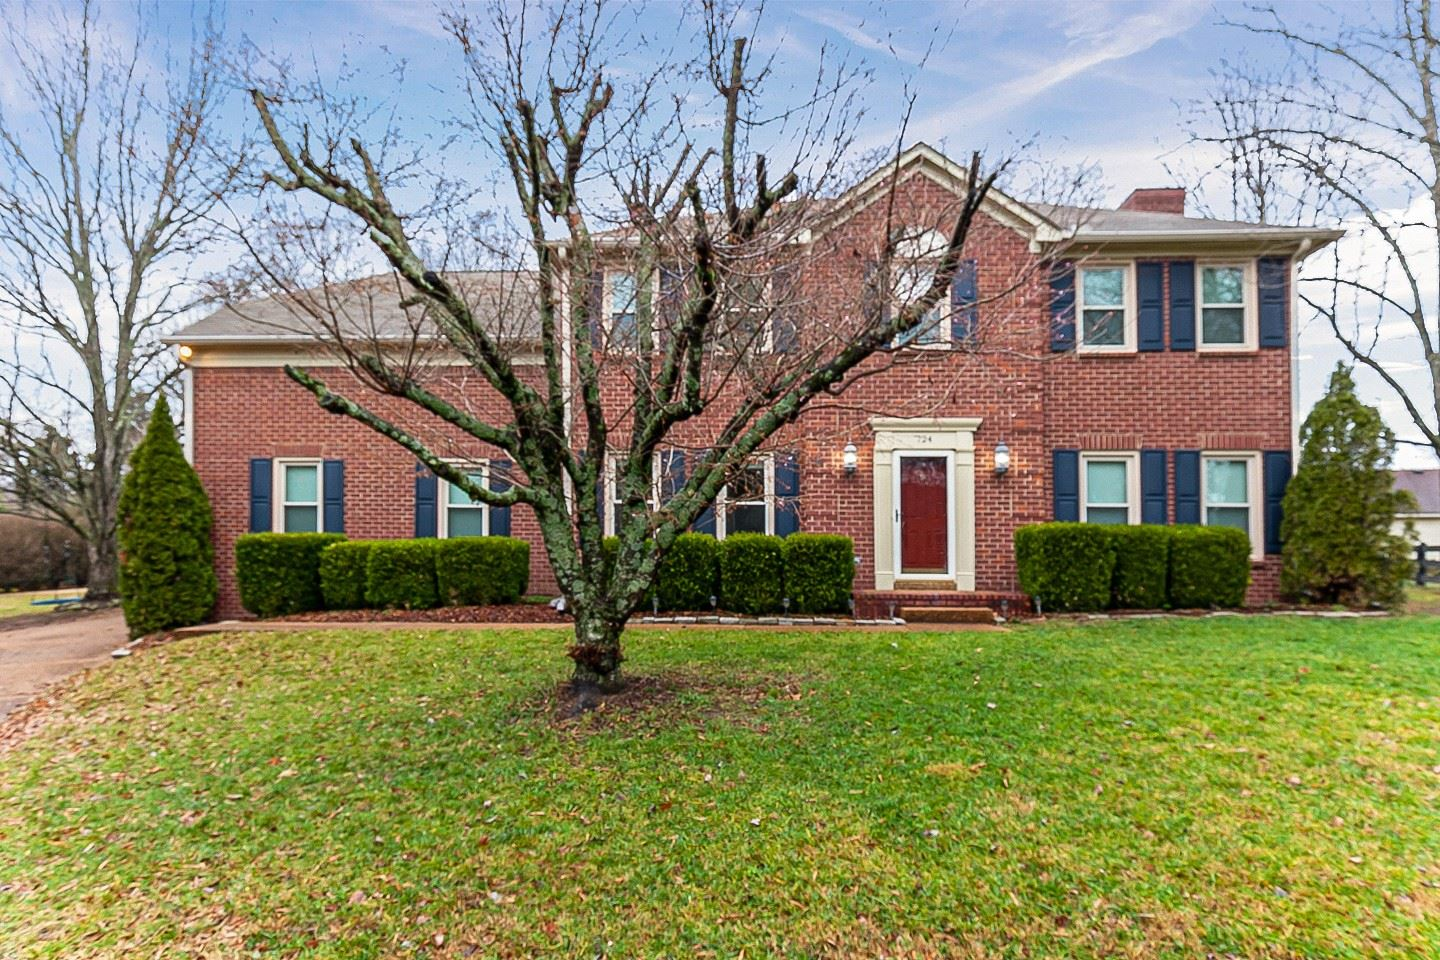 Photo of 724 Fawn Cir, Franklin, TN 37067 (MLS # 2218175)